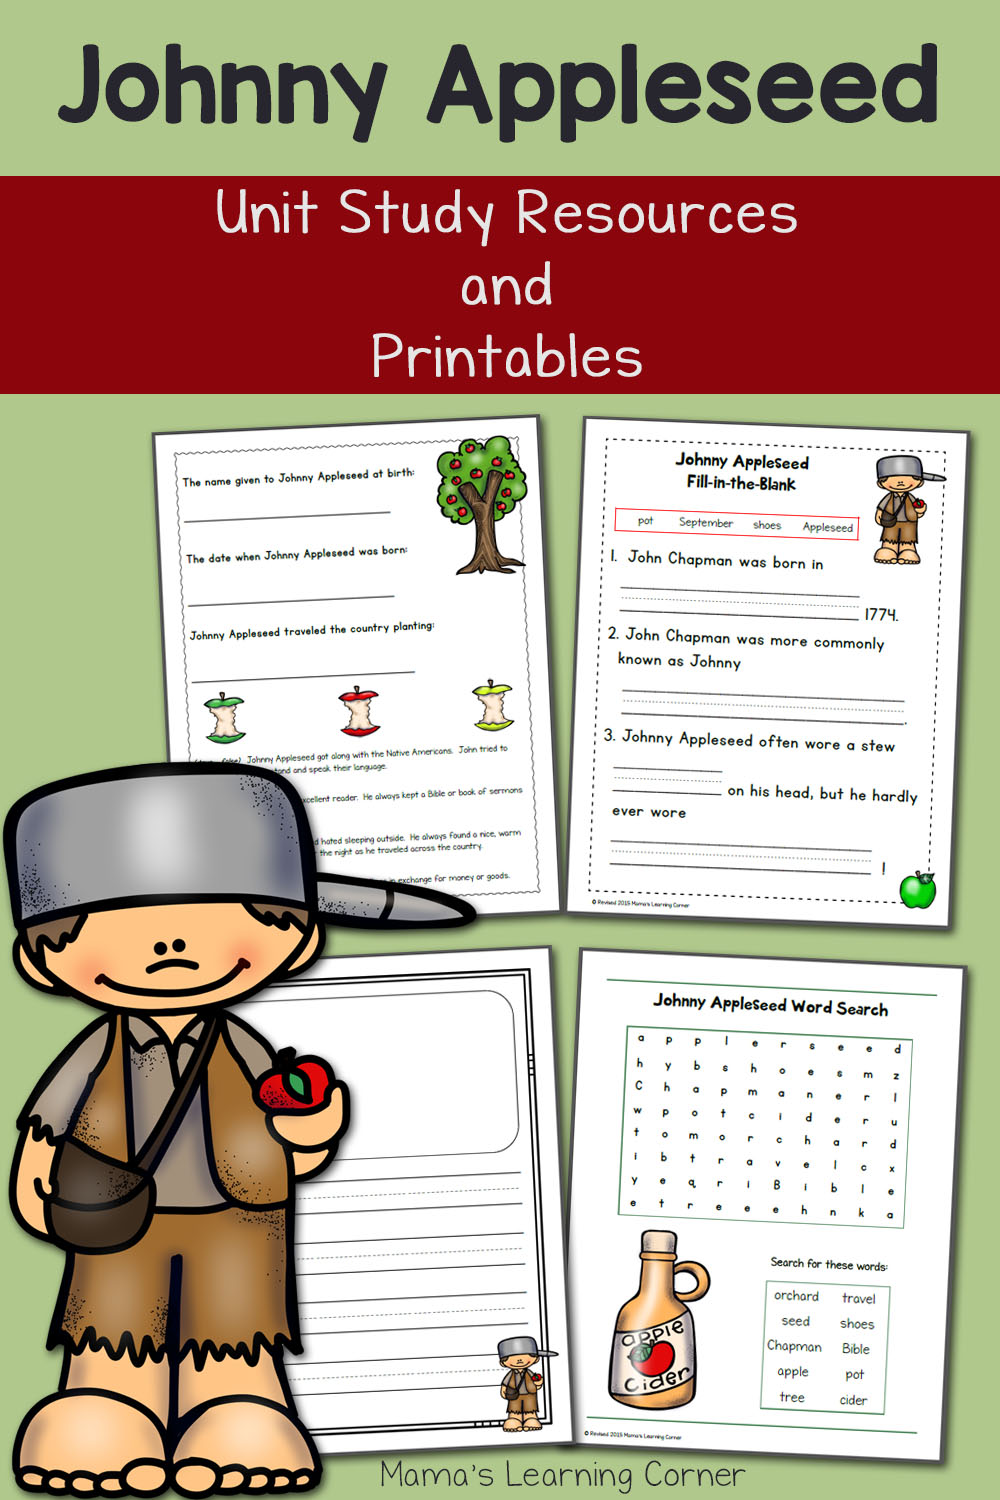 medium resolution of Johnny Appleseed Printables and Unit Study Resources - Mamas Learning Corner